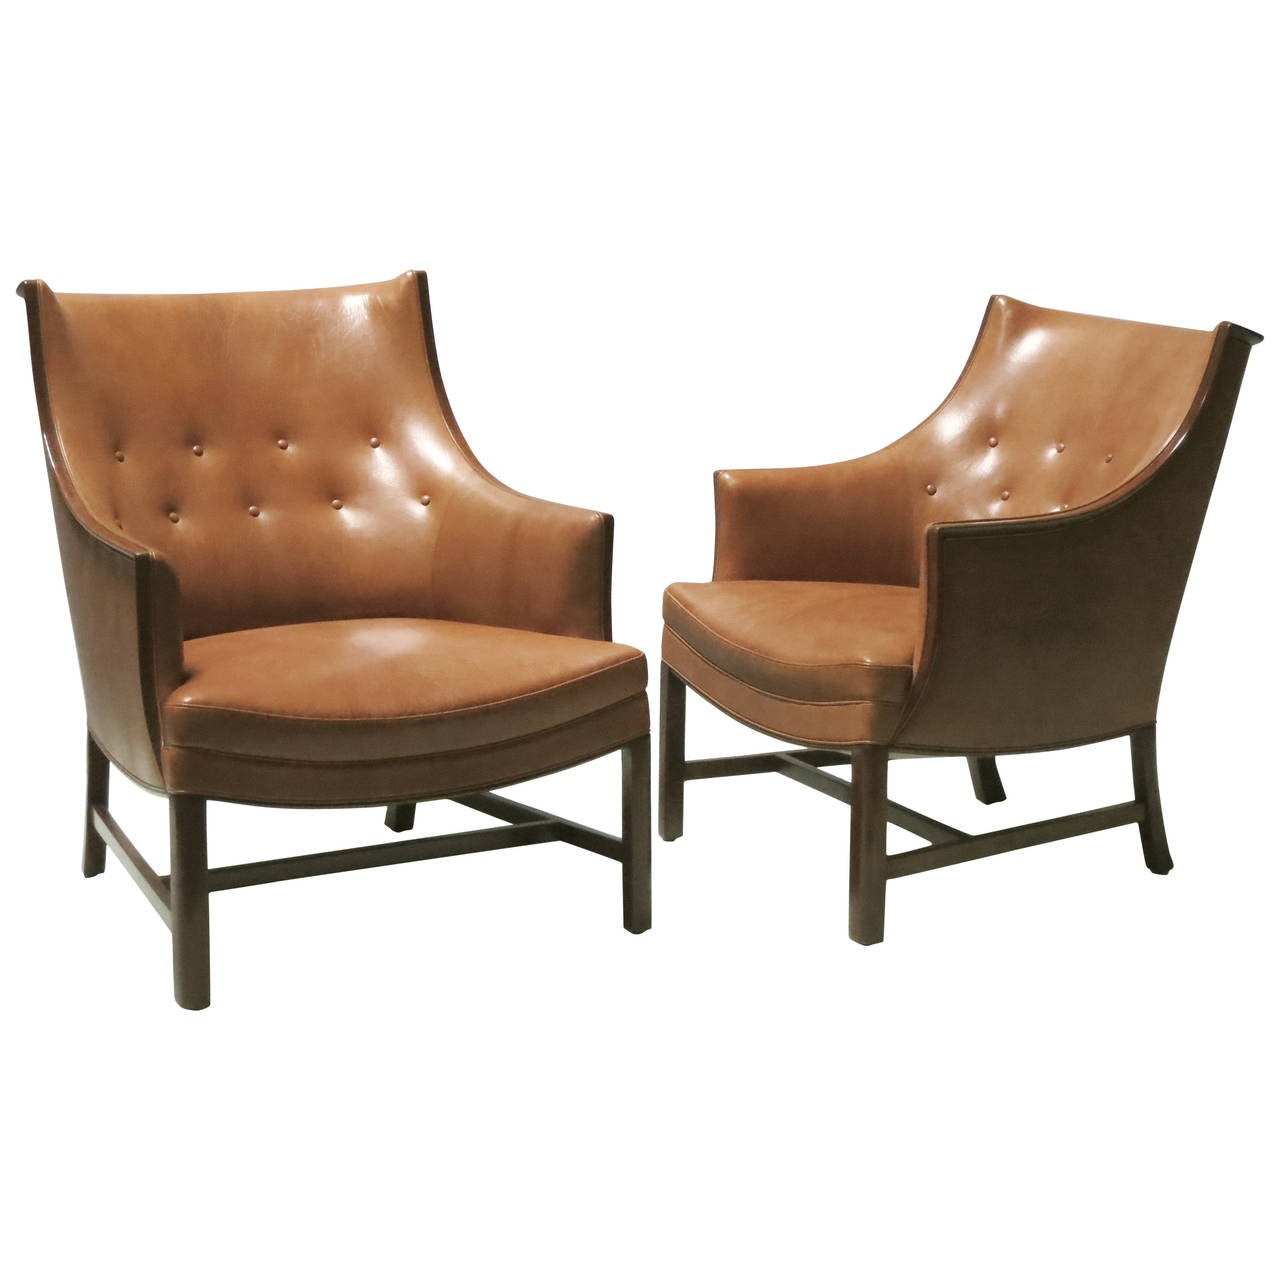 Pair of Refined 1930s Easy Chairs by Frits Henningsen For Sale